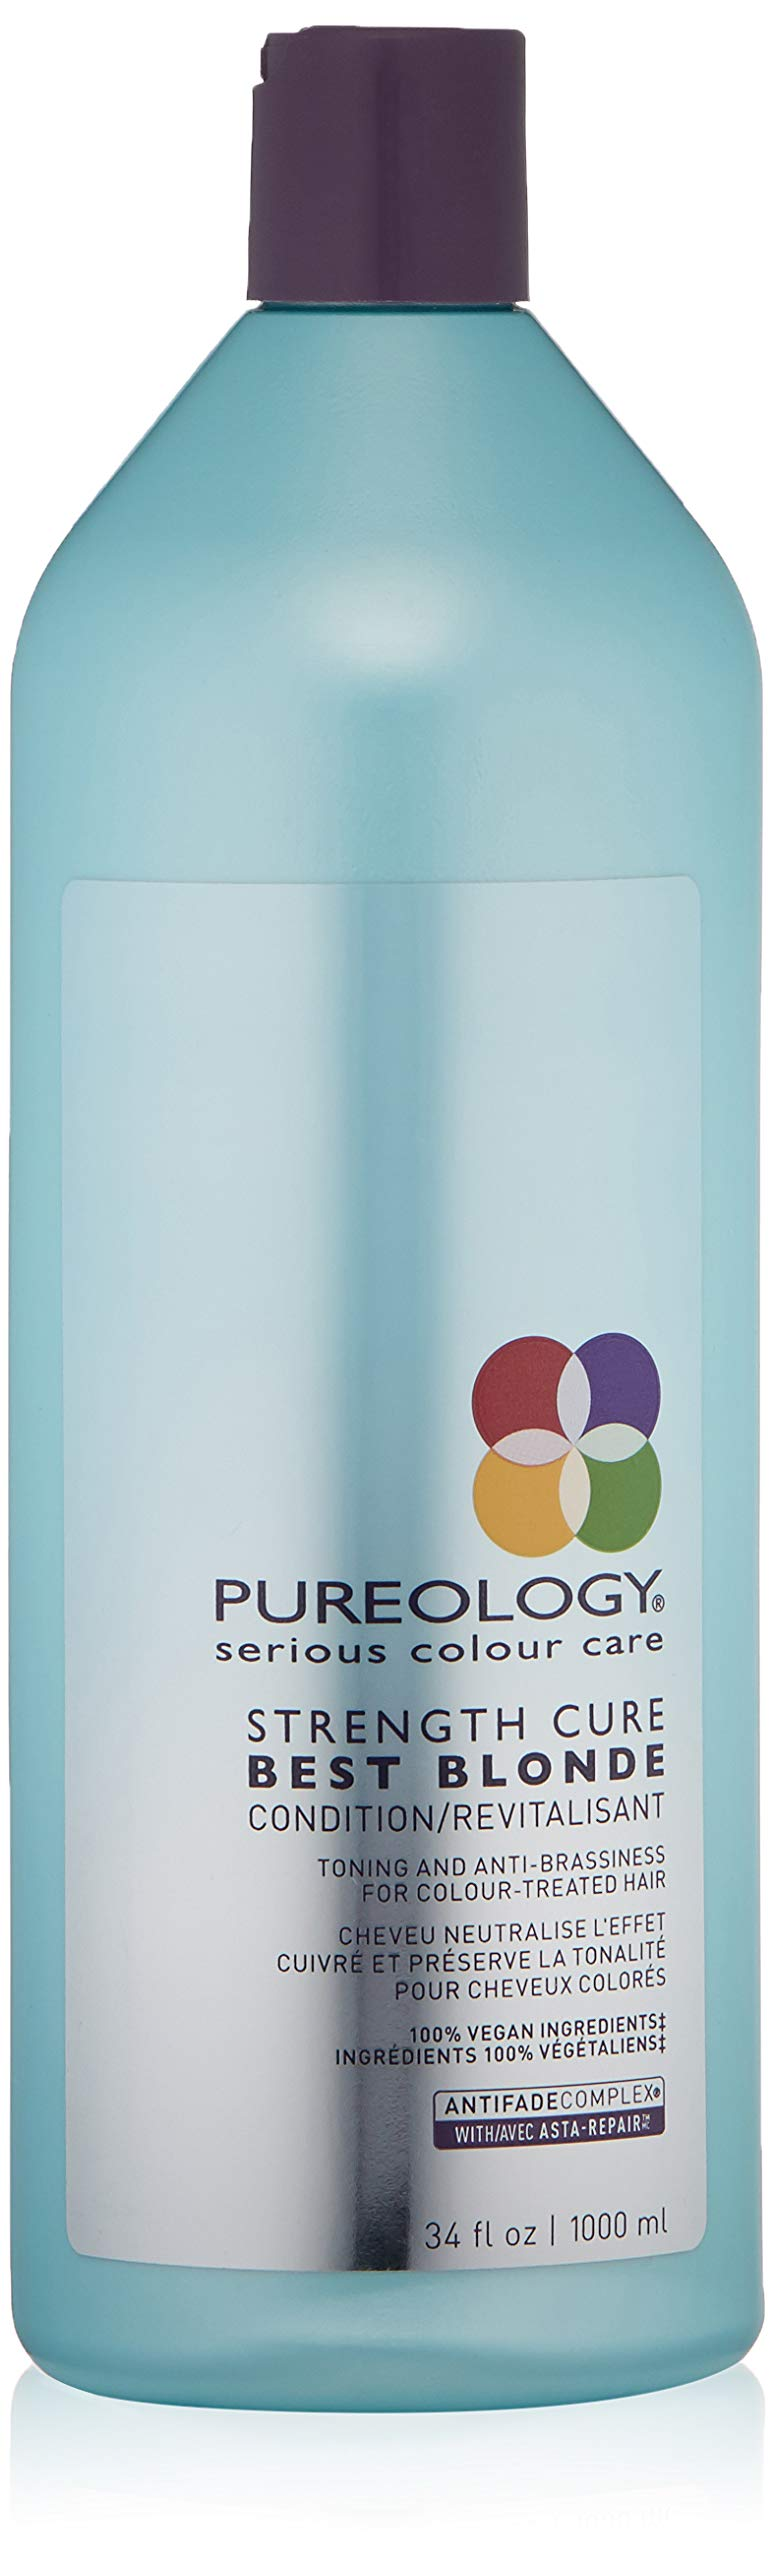 Pureology Strength Cure Best Blonde Purple Conditioner, 33.8 fl. oz.